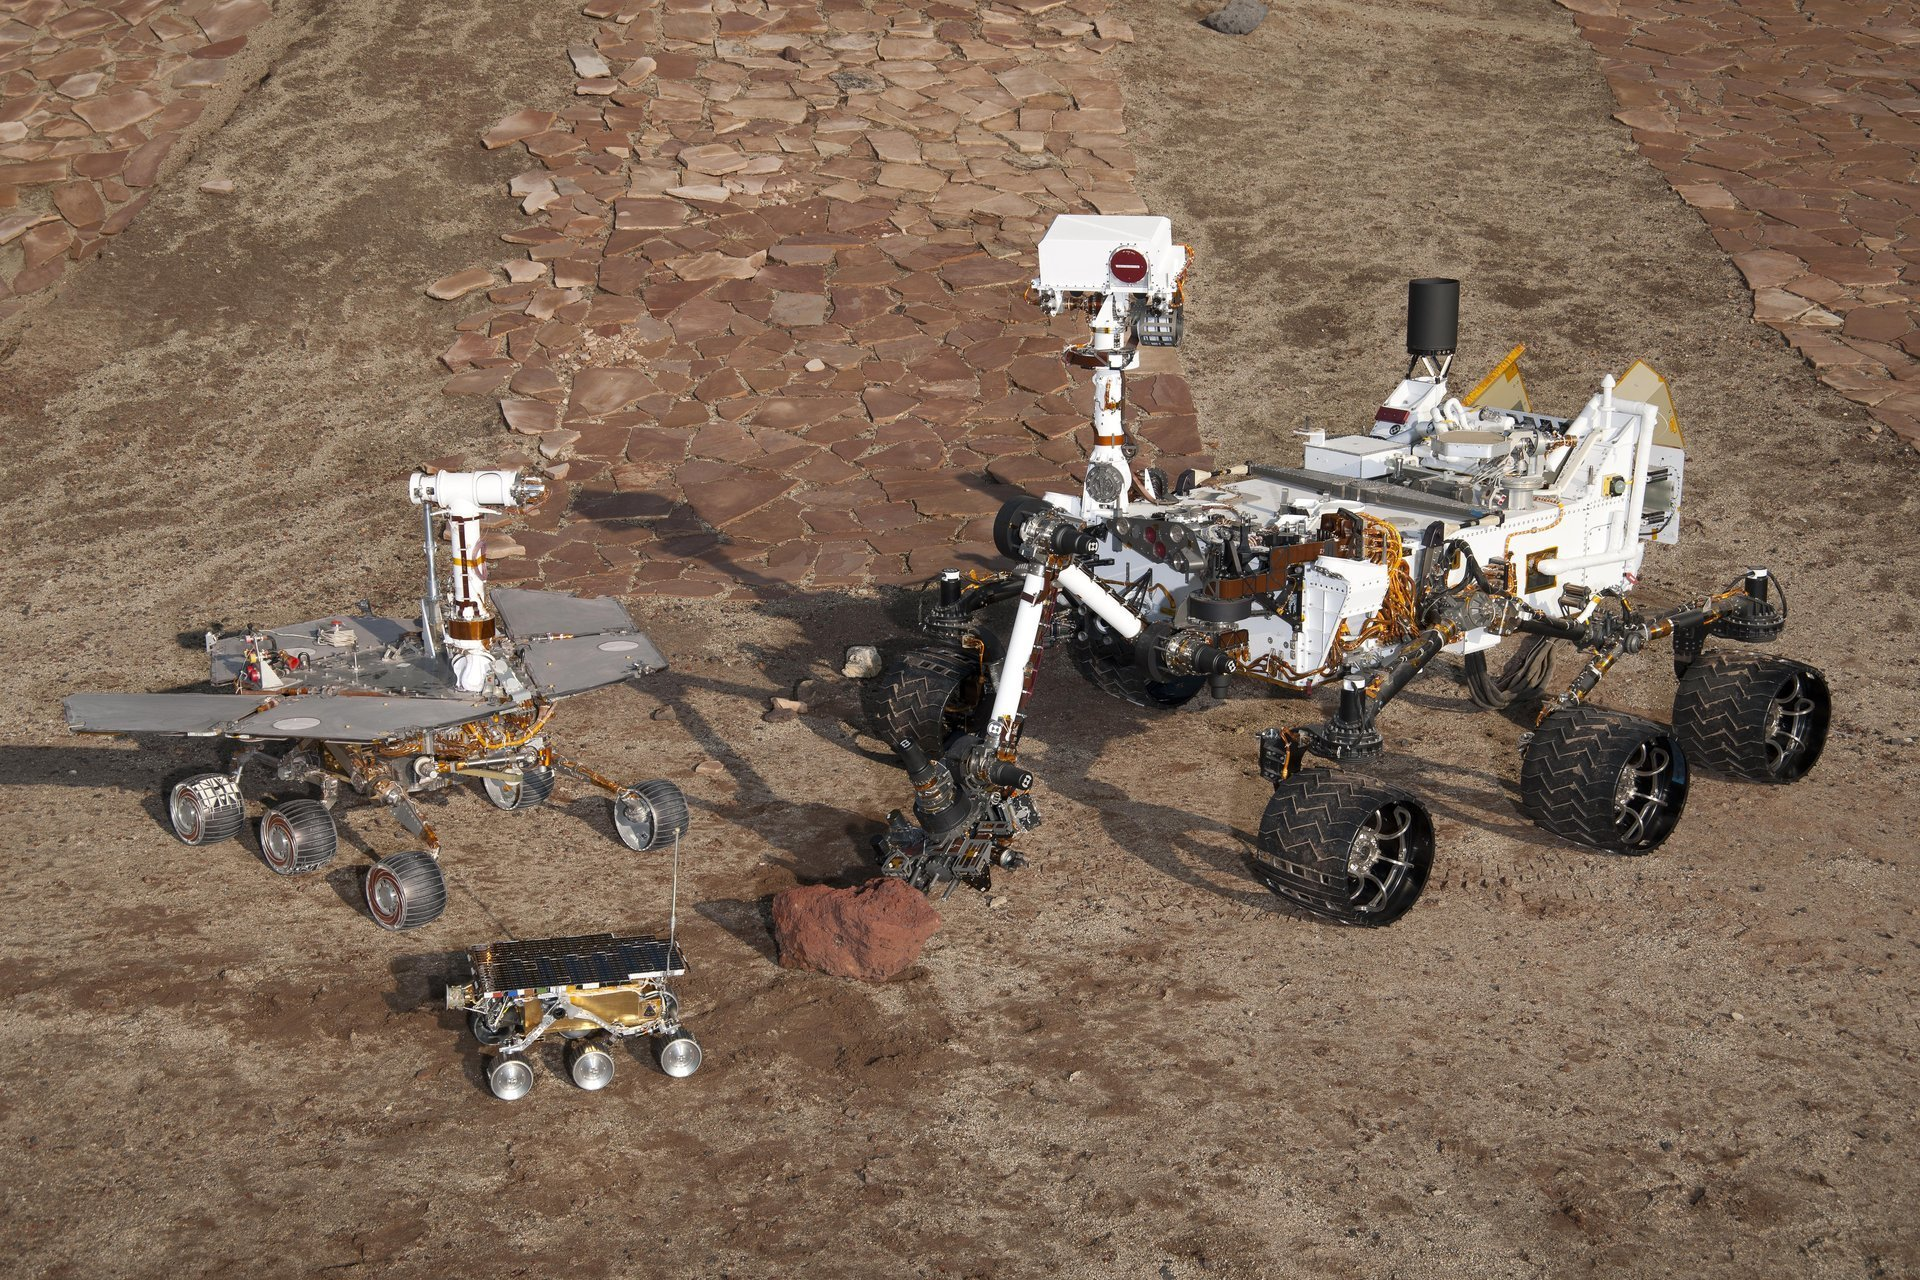 rover mars pathfinder spirit and opportunity curiosity HD wallpaper 1920x1280